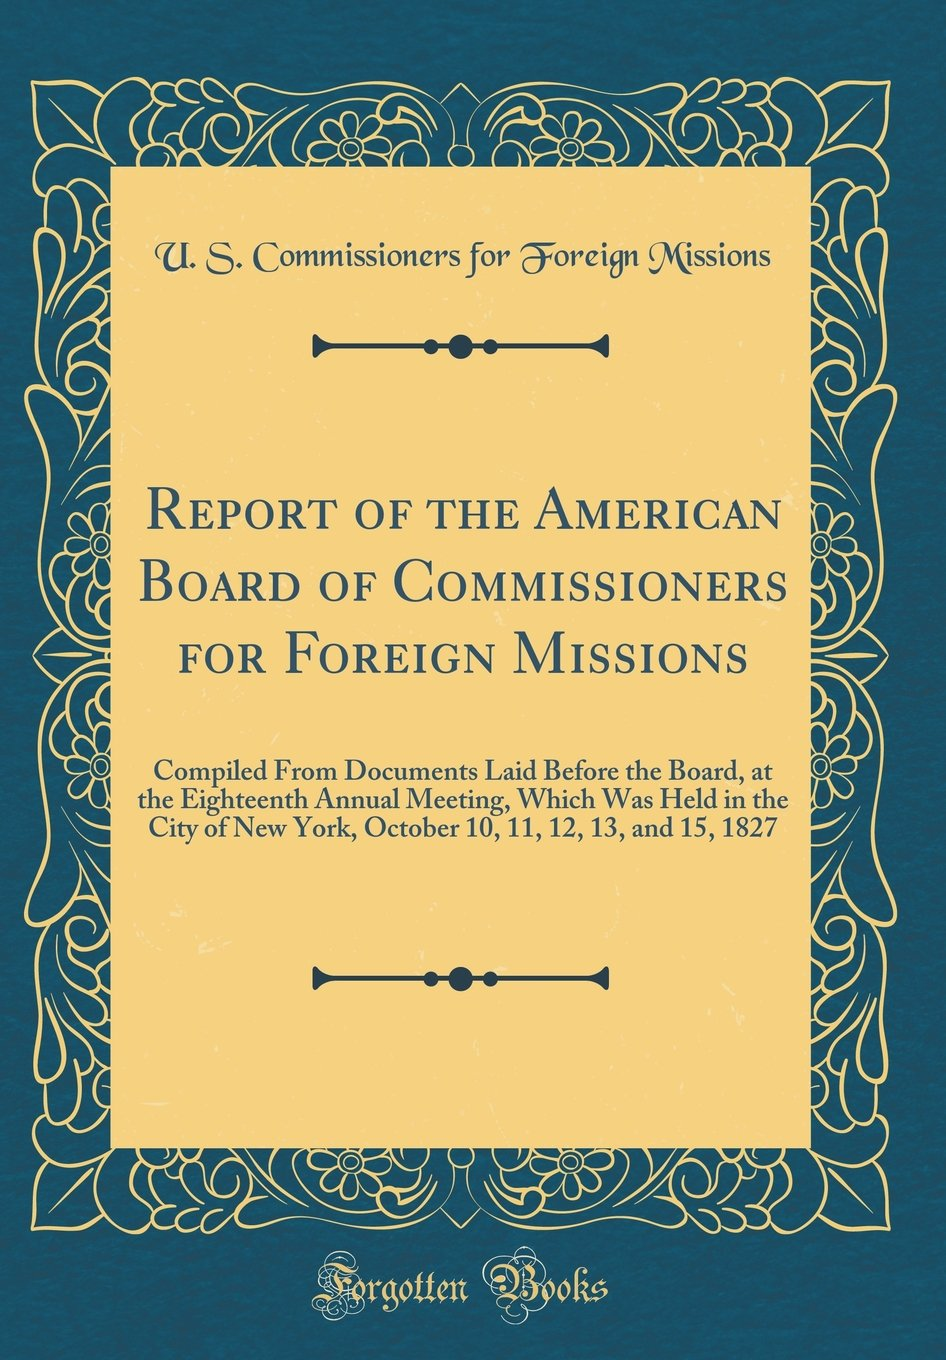 Report of the American Board of Commissioners for Foreign Missions: Compiled From Documents Laid Before the Board, at the Eighteenth Annual Meeting, ... 11, 12, 13, and 15, 1827 (Classic Reprint) pdf epub